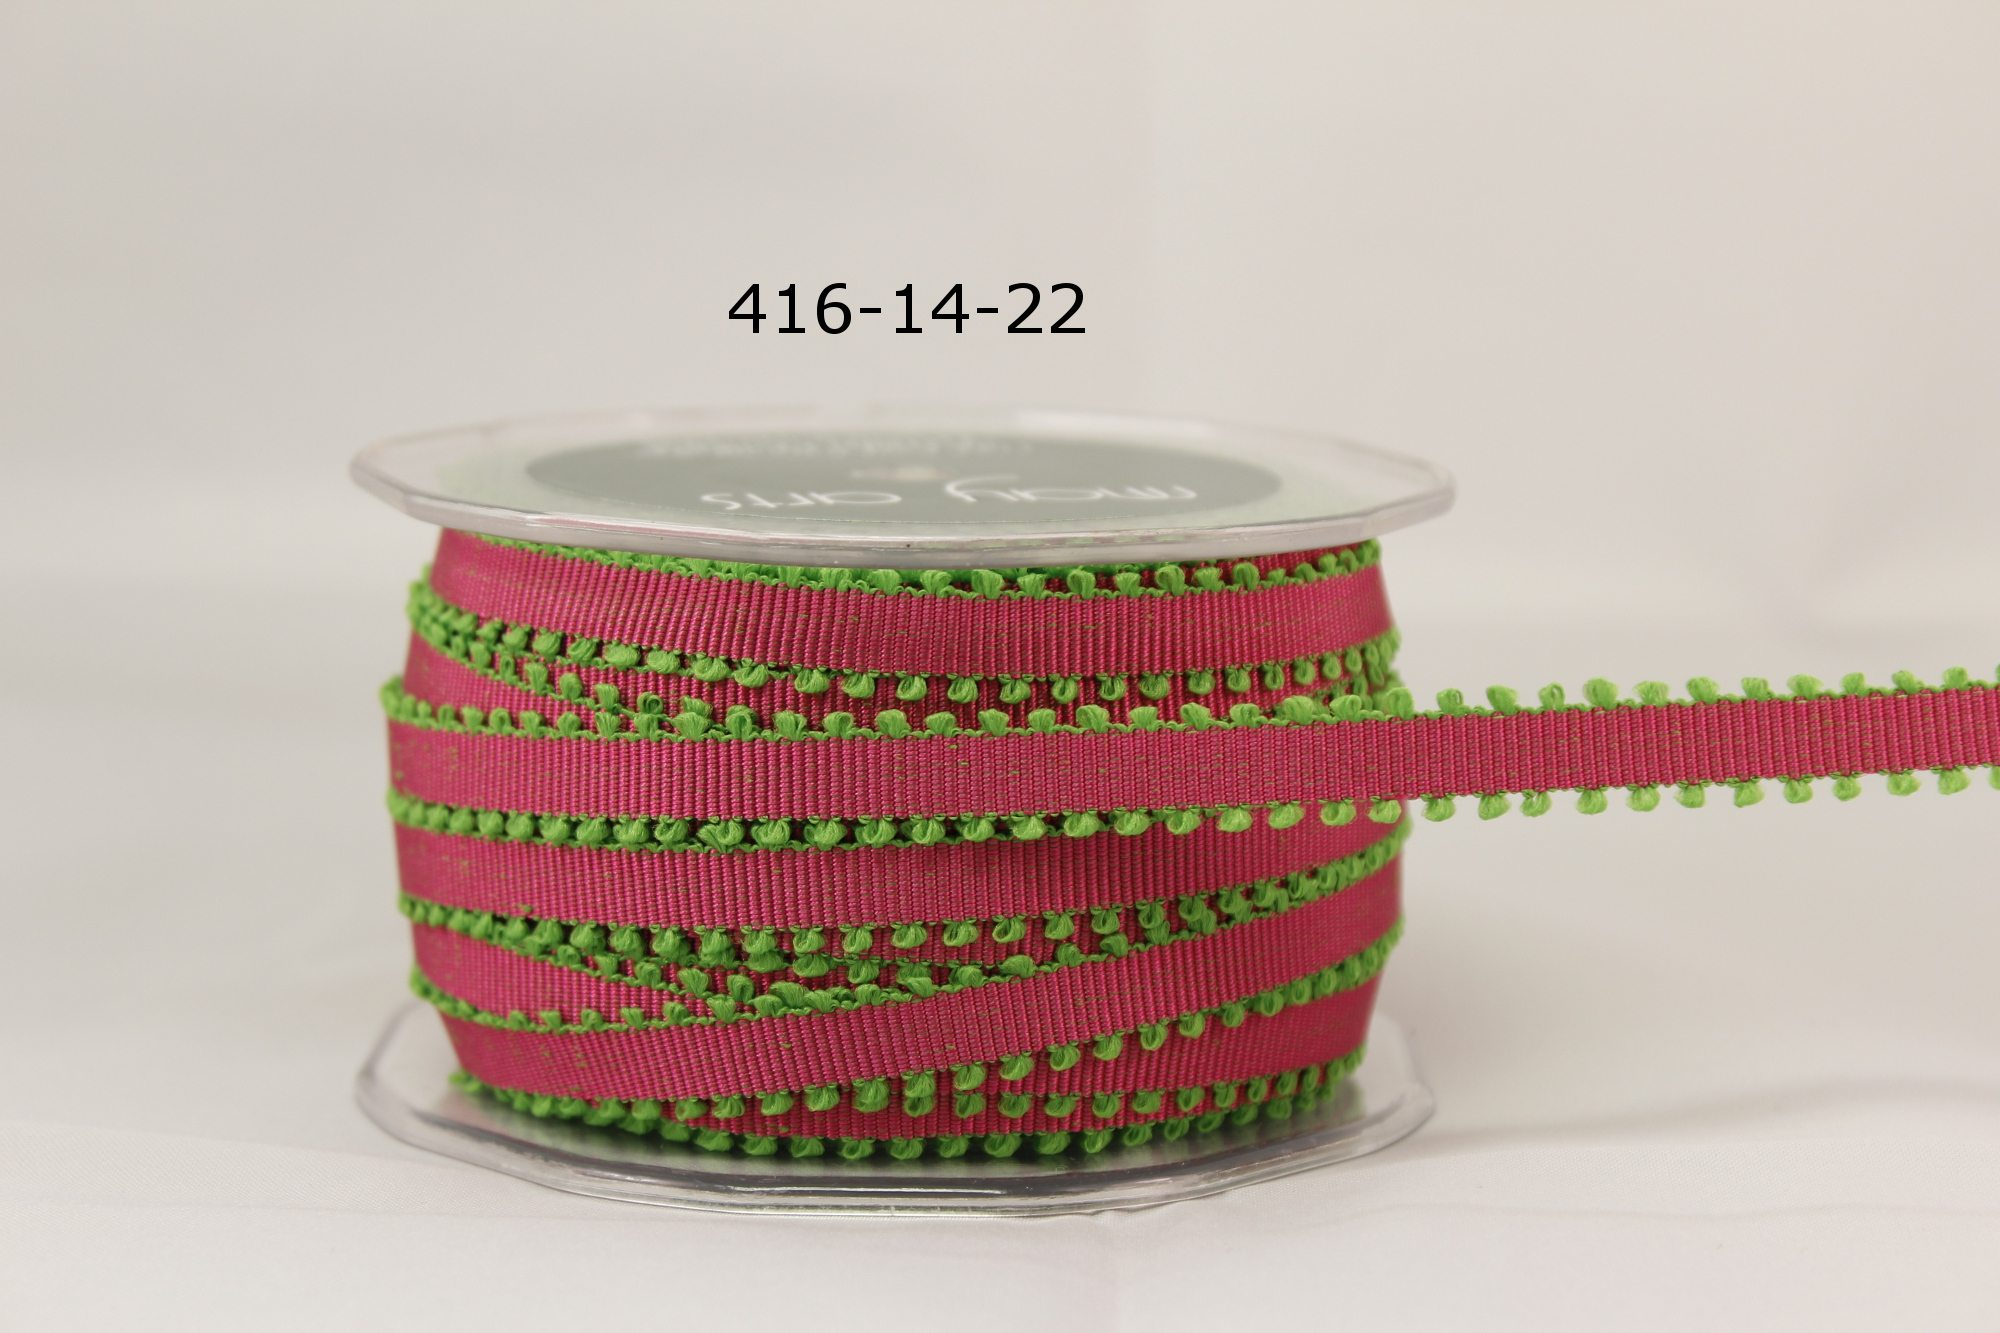 Variation #154931 of 1/4 Inch Grosgrain Ribbon w/ Picot Edge 1